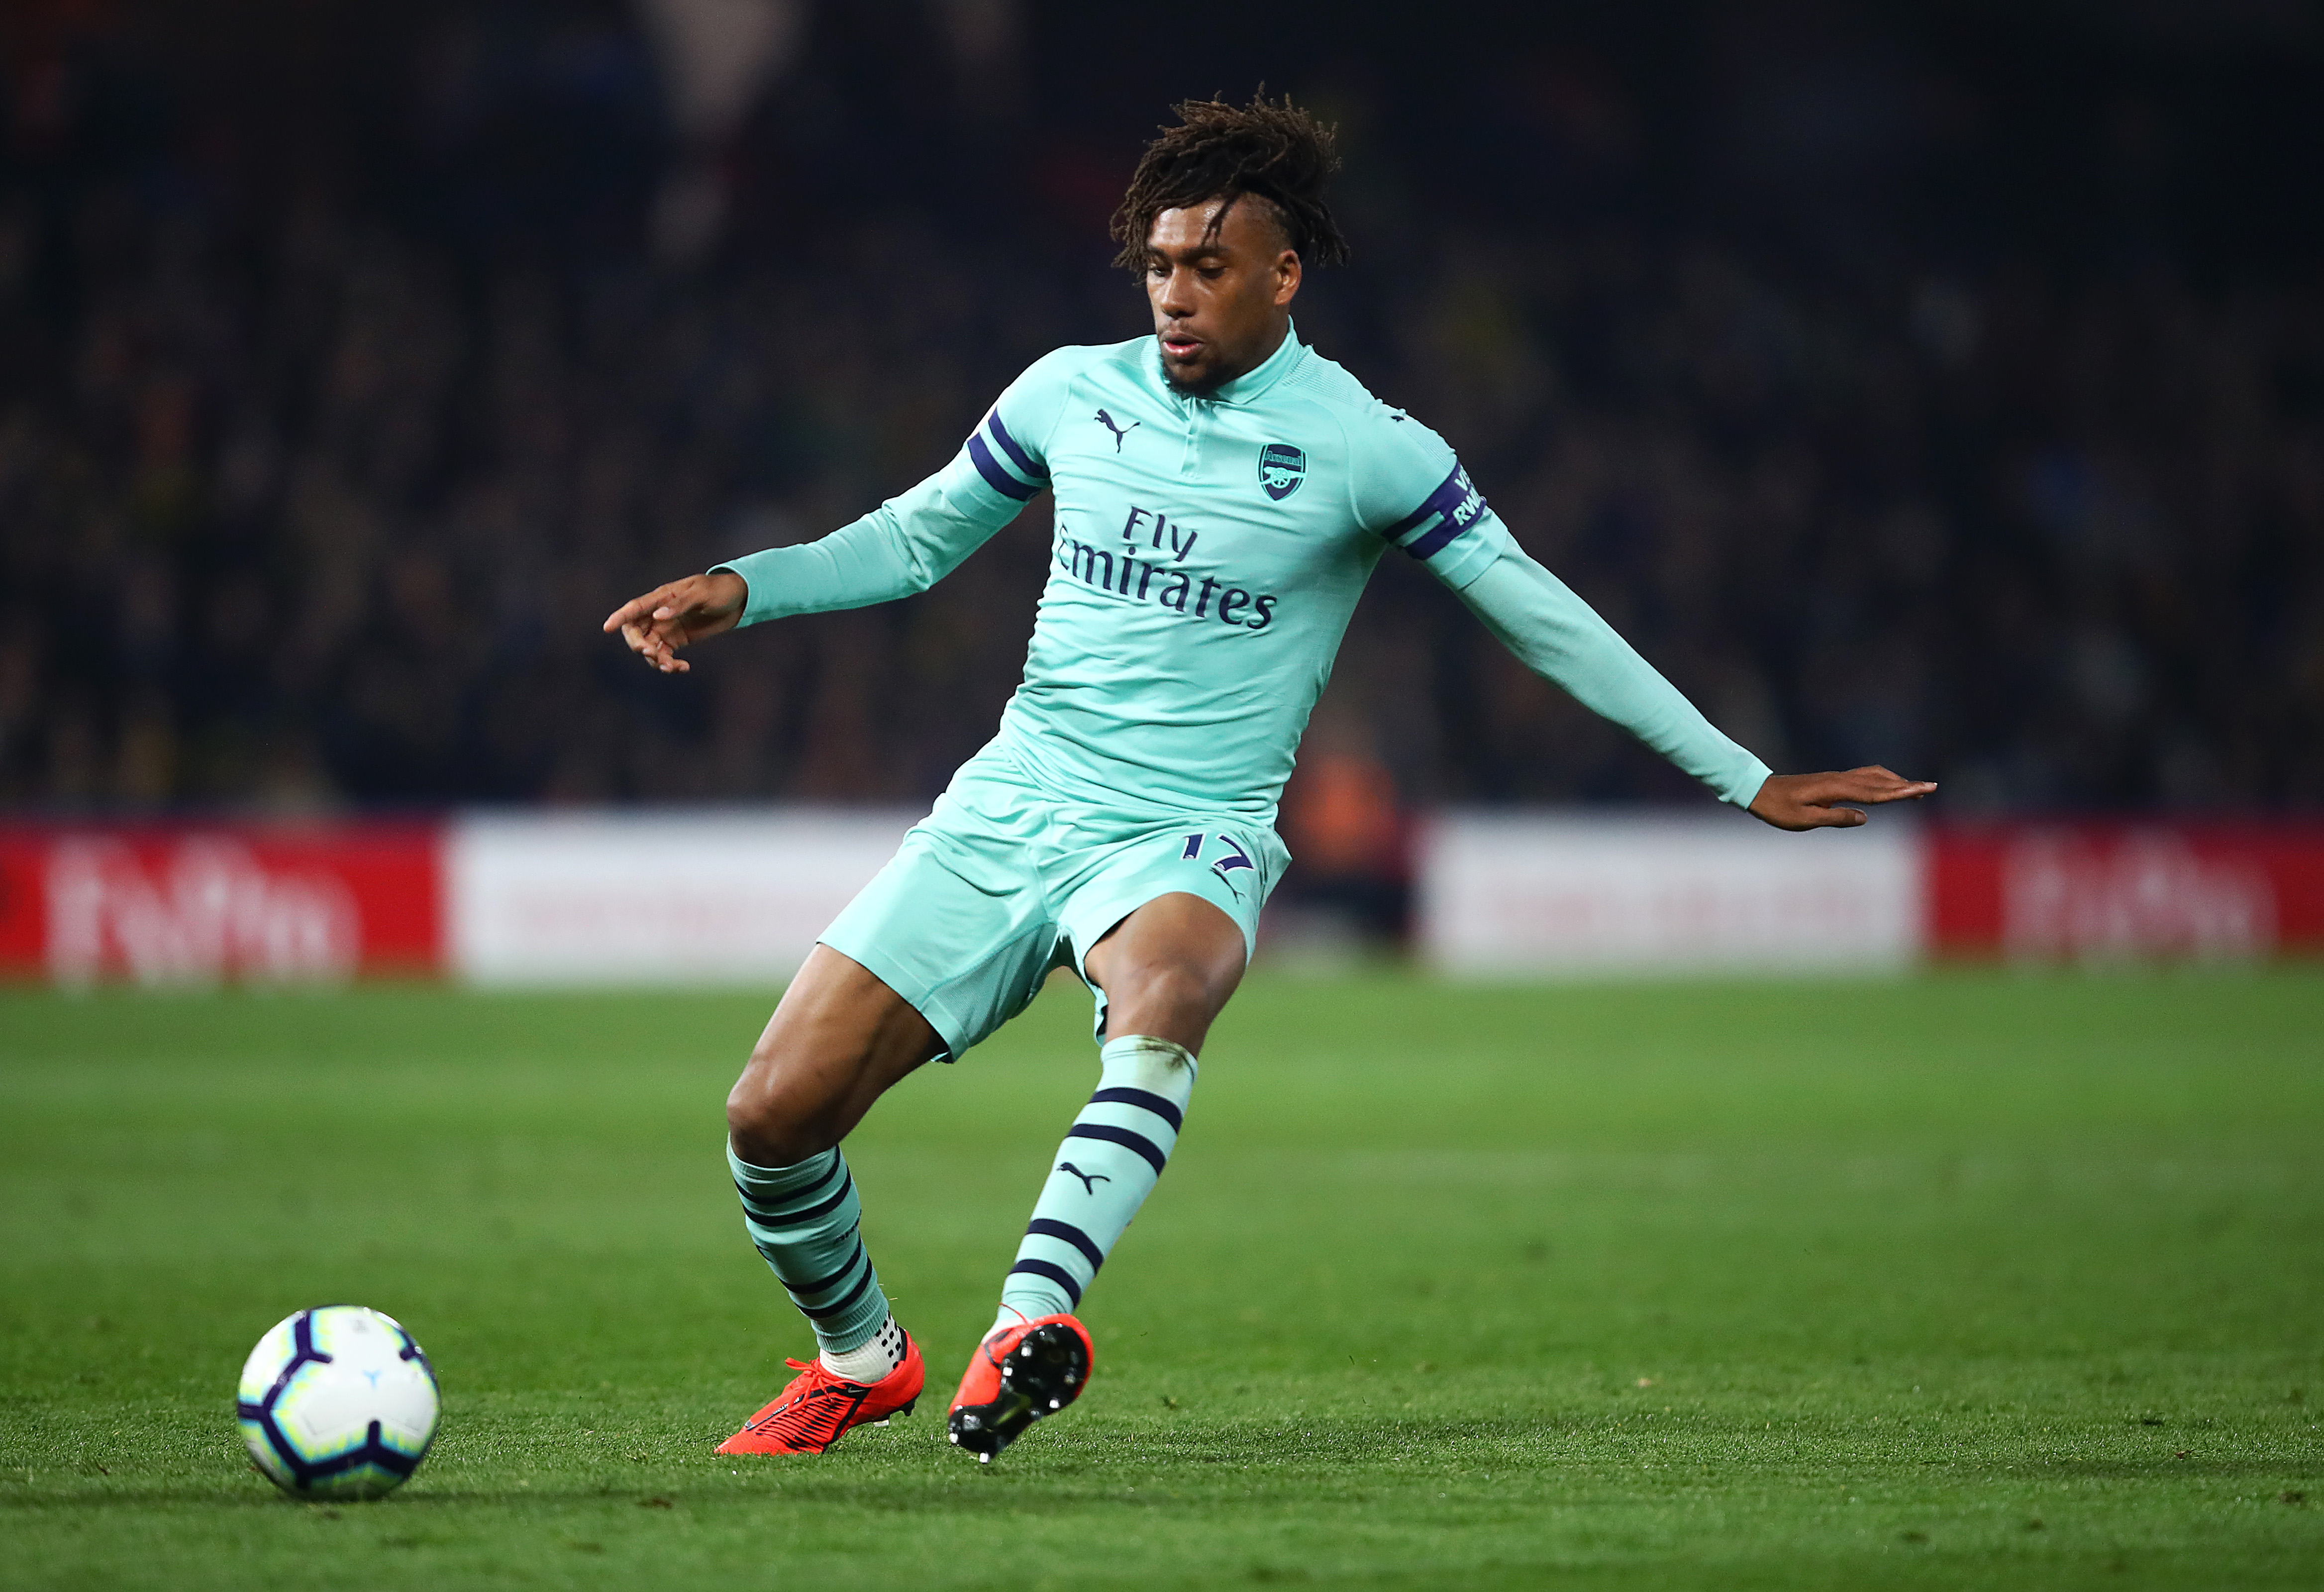 Iwobi joins Everton (Photo by Julian Finney/Getty Images)